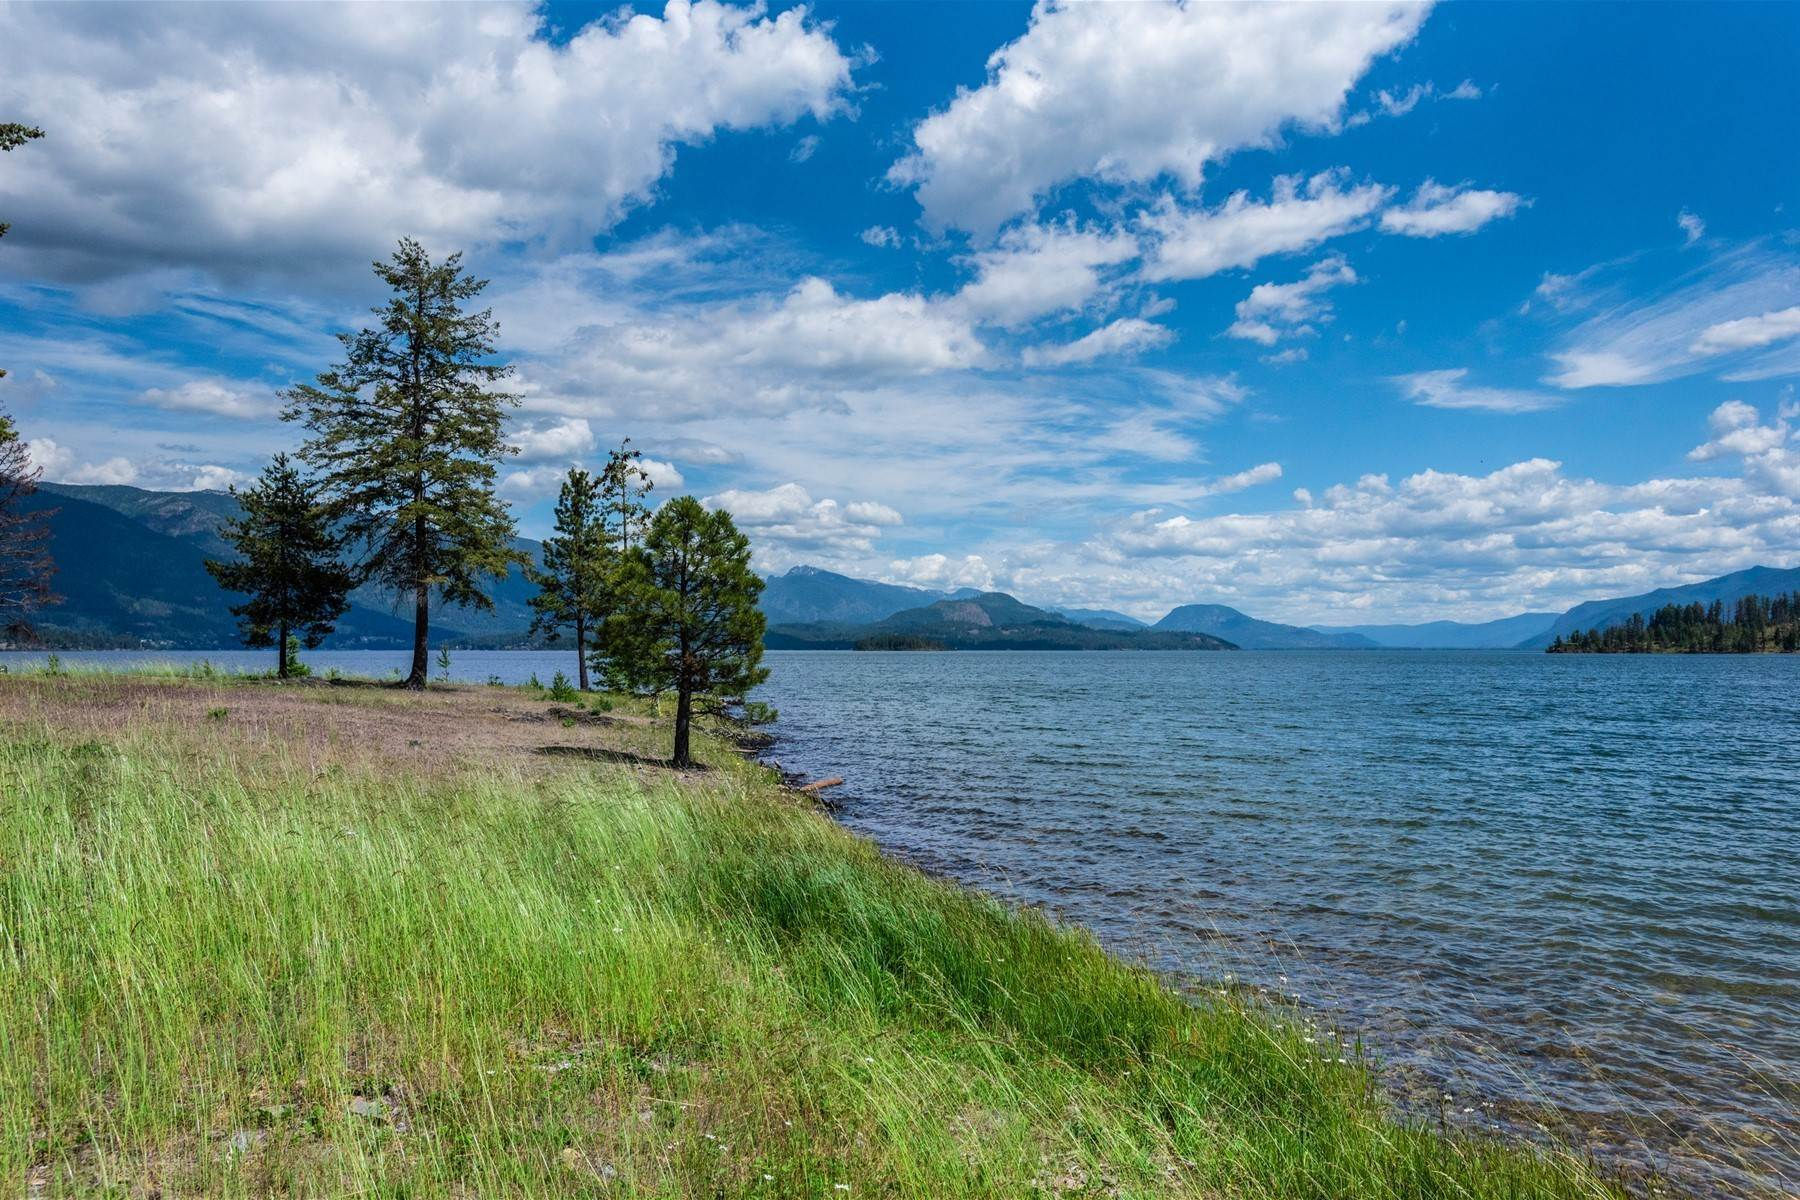 Land for Sale at Glengary Waterfront 255 McLean Dr, Sagle, Idaho, 83860 United States